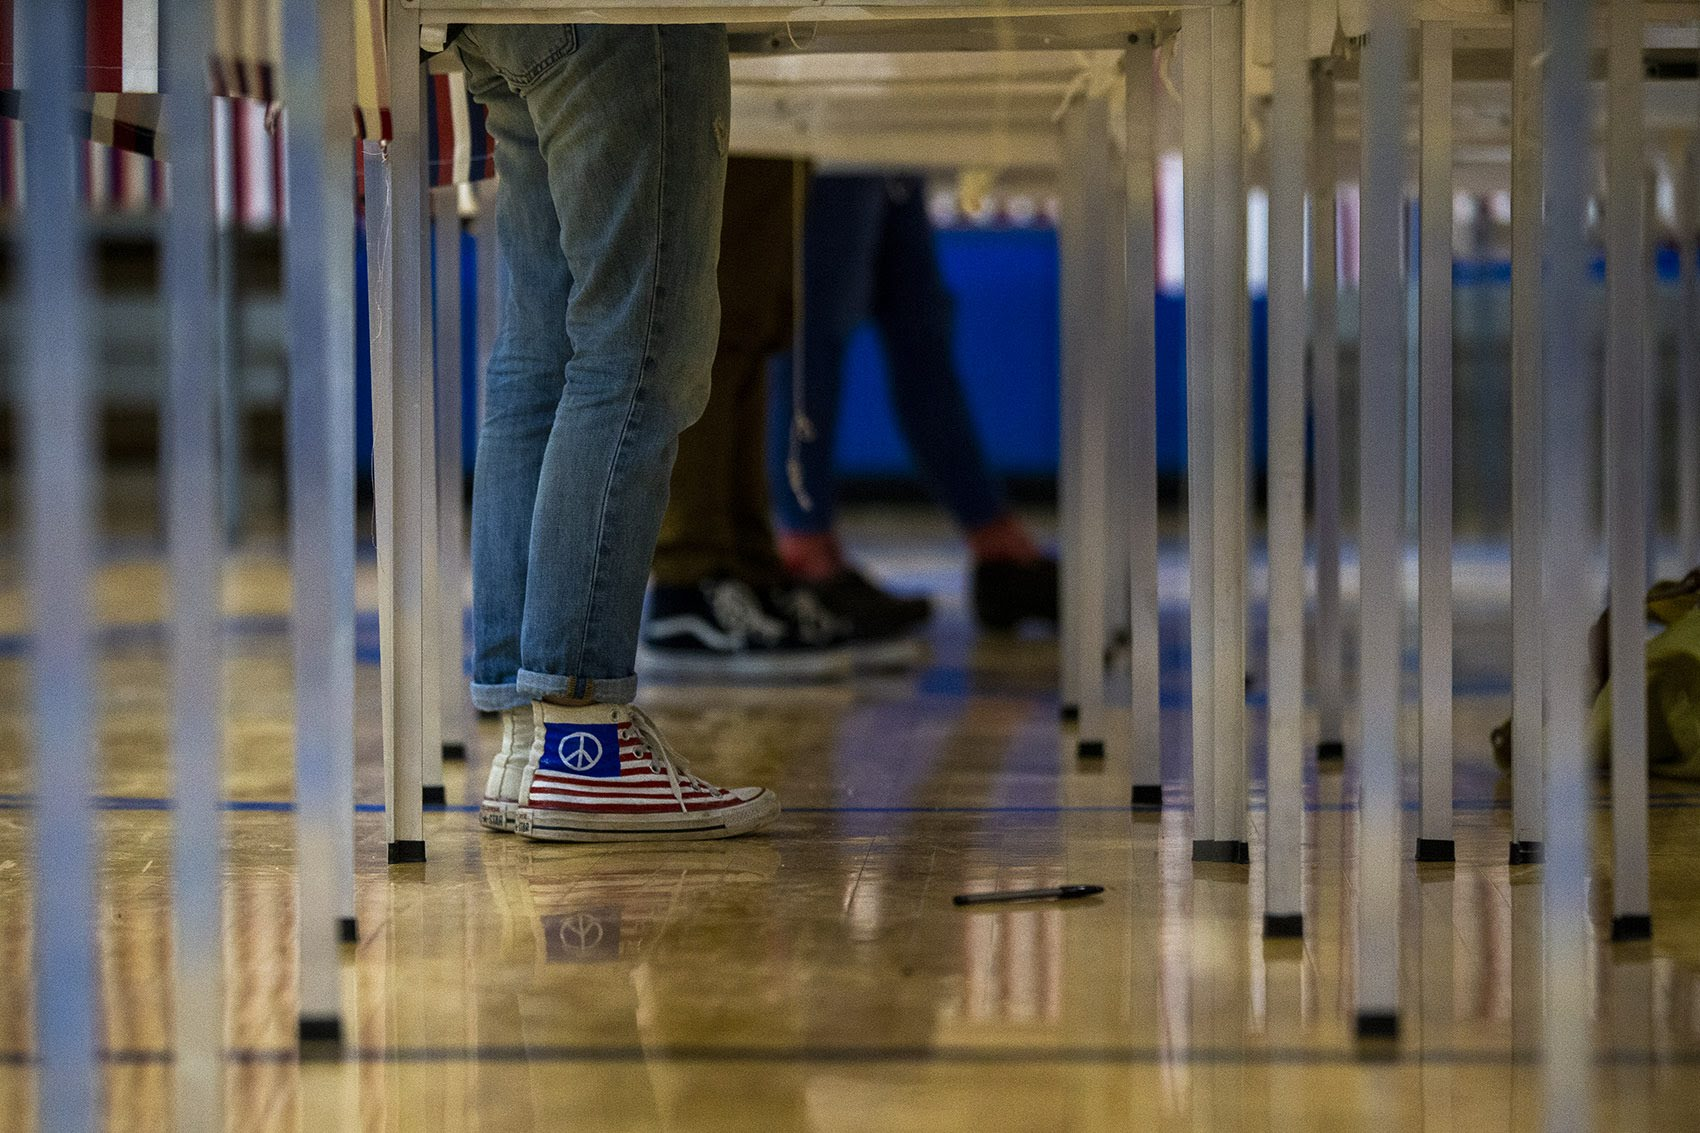 A University of New Hampshire student votes at the polls at Oyster River High School in Durham, N.H. (Jesse Costa/WBUR)